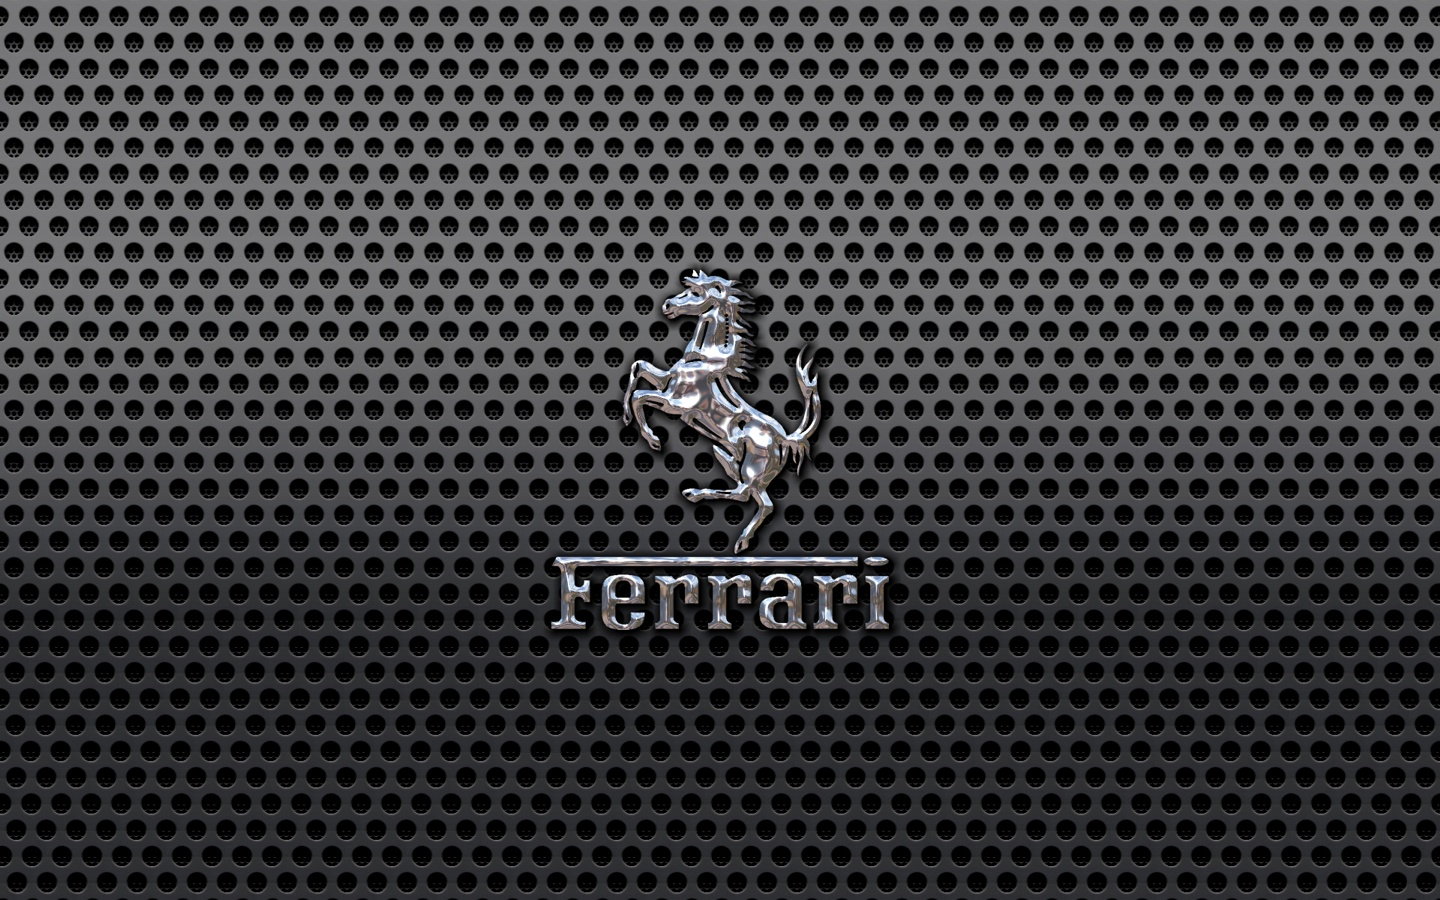 Ferrari Prancing Horse of Maranello logo on a black metal mesh 1440x900